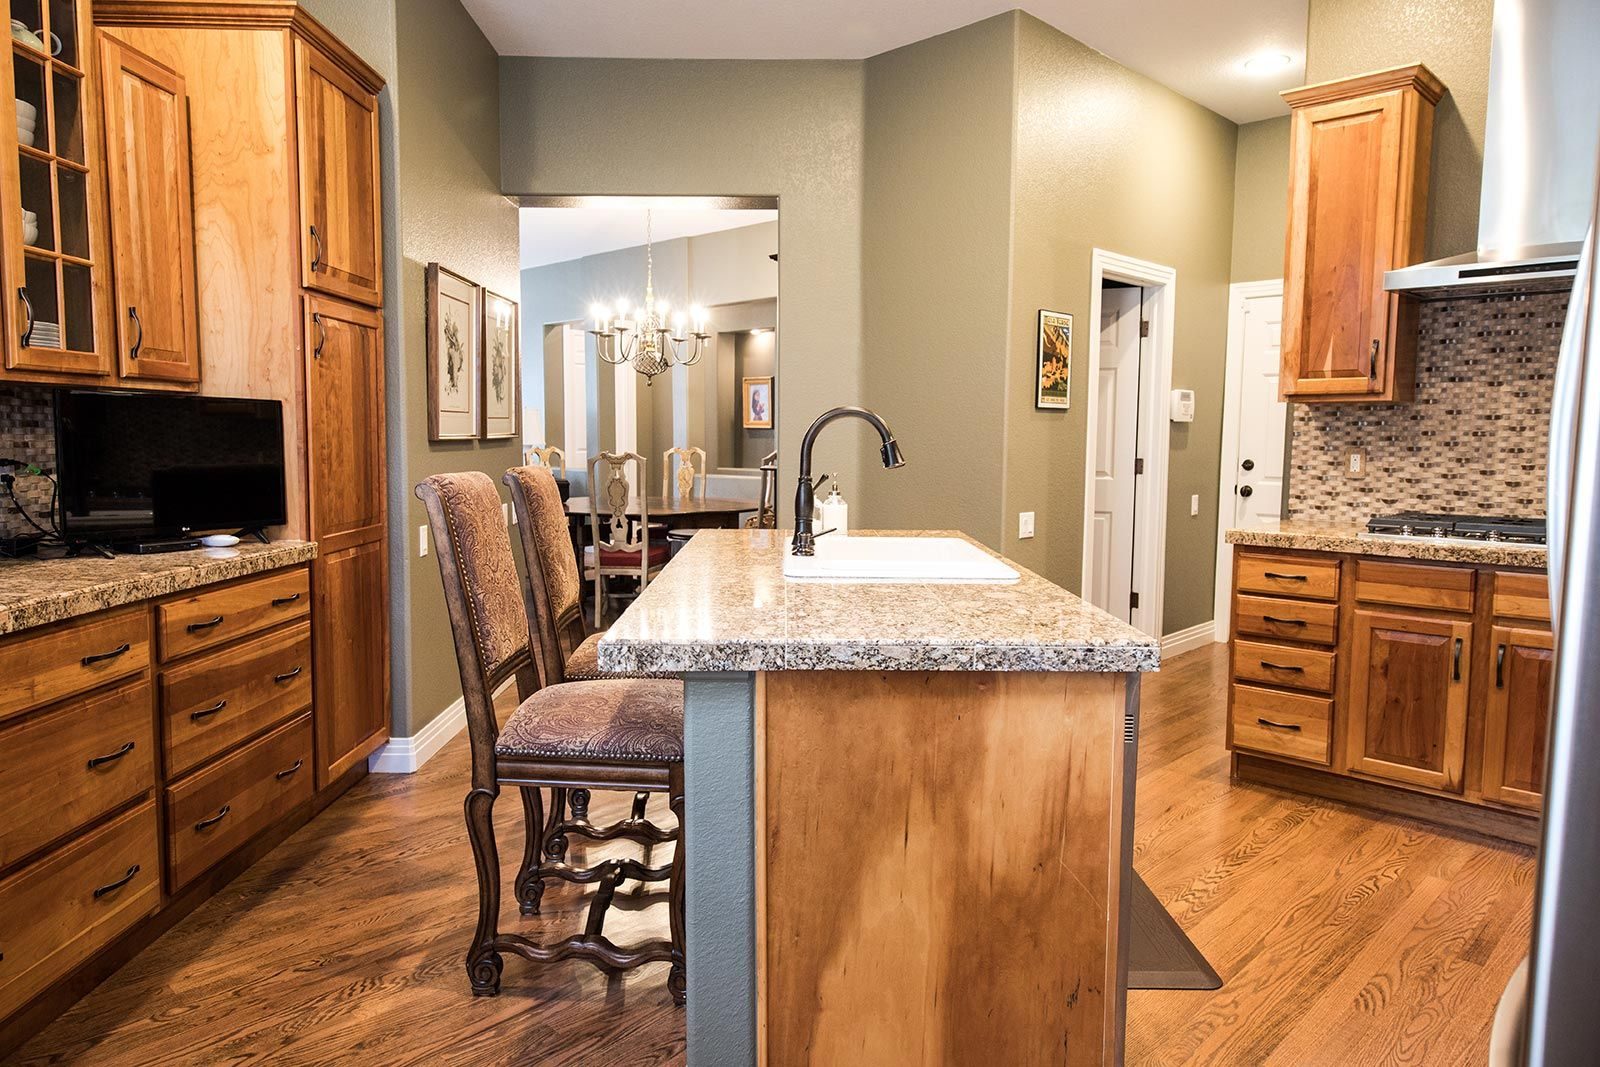 How To Clean Remove Grease From Your Wood Cabinets Frugal Blossom Clean Kitchen Cabinets Wood Cabinets Cleaning Wood Cabinets